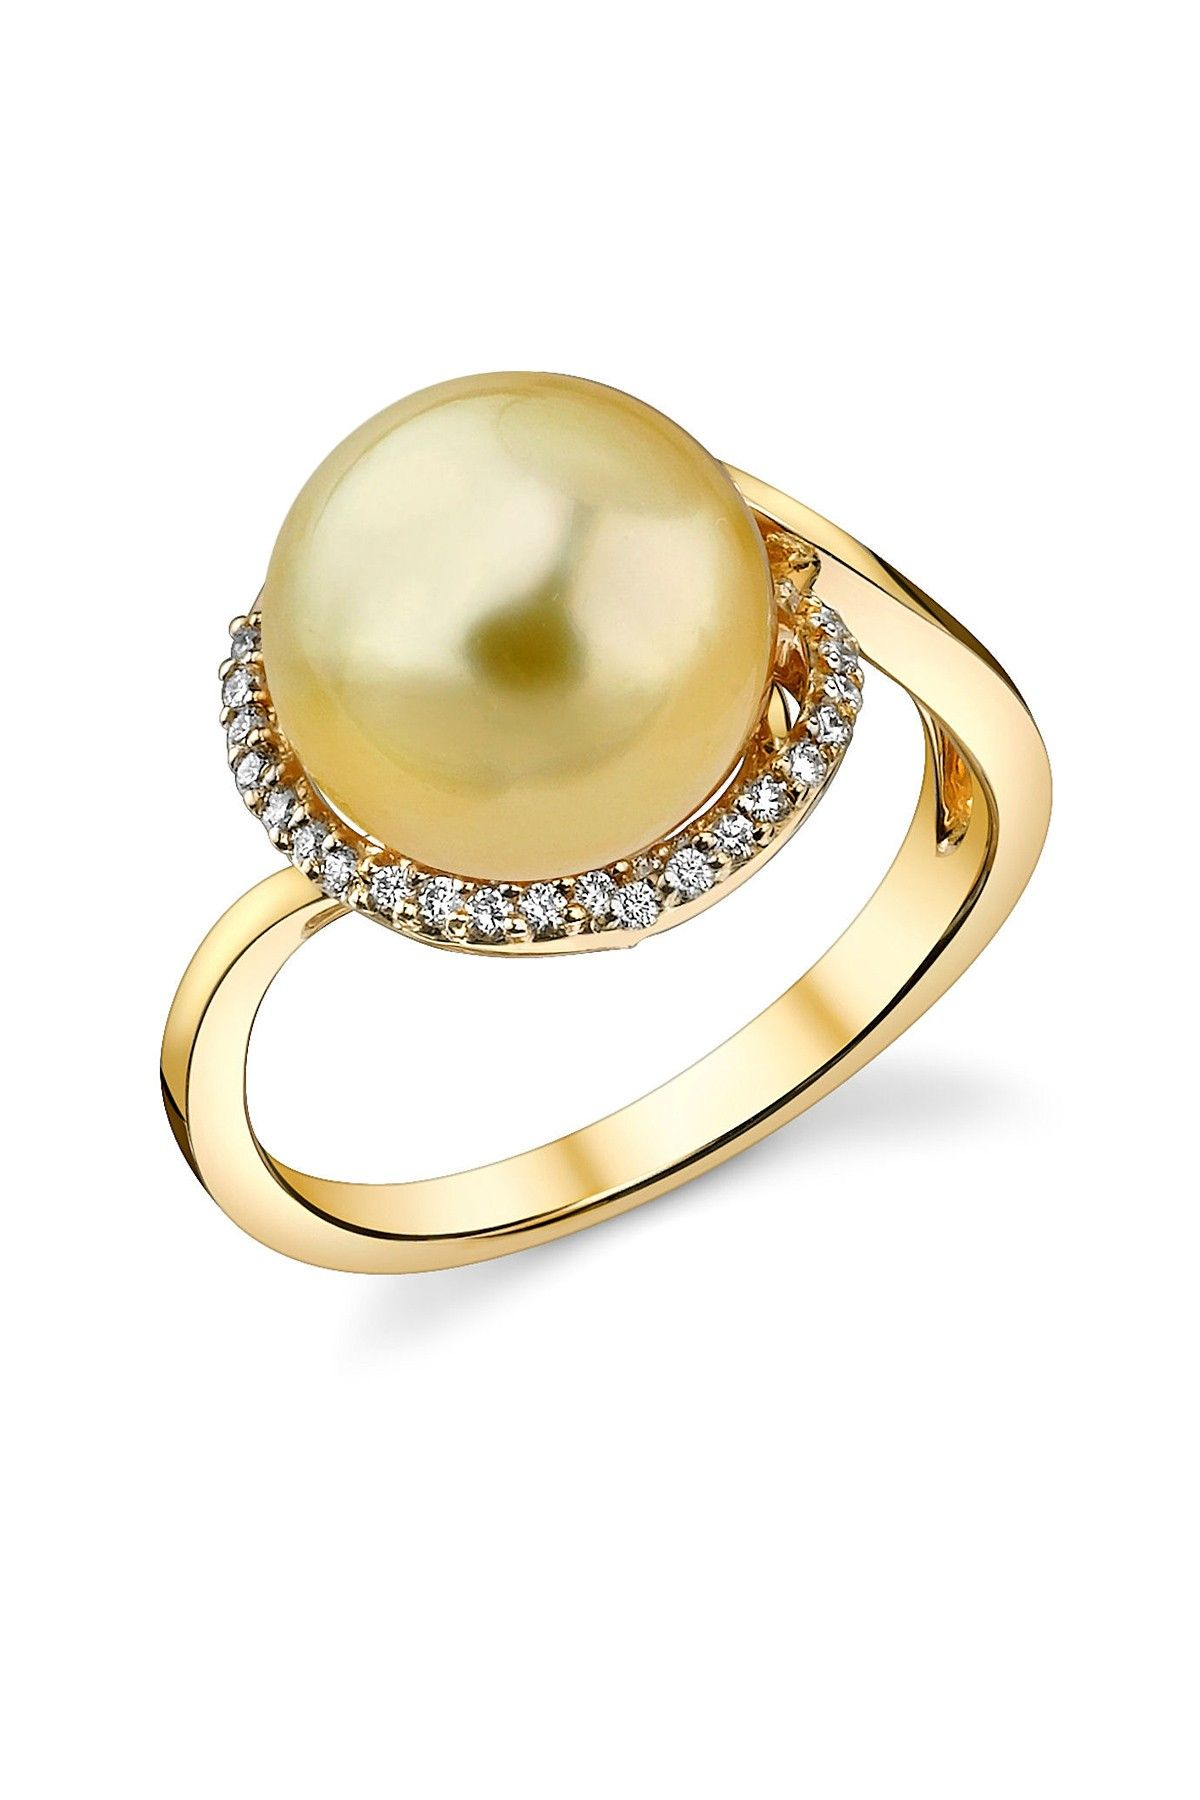 14K Yellow Gold 10mm Golden South Sea Pearl & Diamond Ring - 0.33 ...